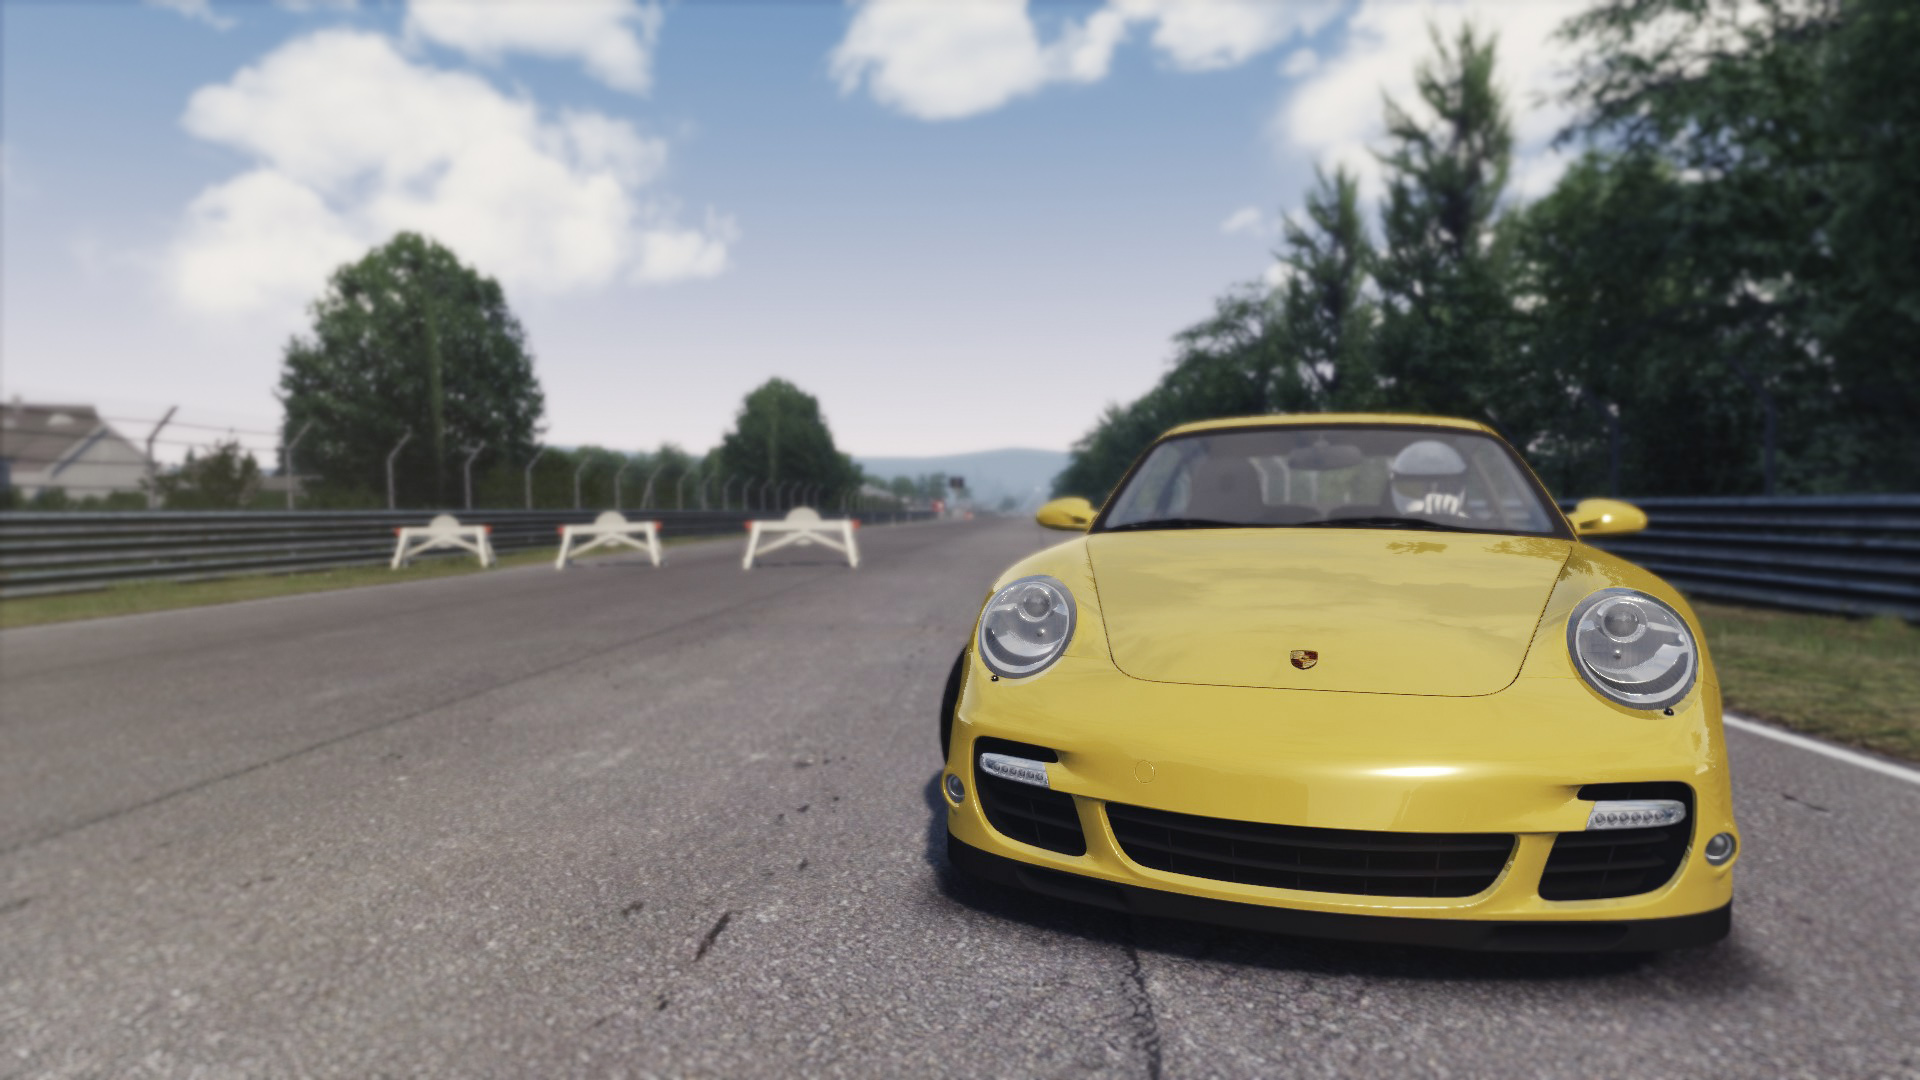 Screenshot_porsche_997turbo_ks_nordschleife_17-8-115-15-24-30.jpg